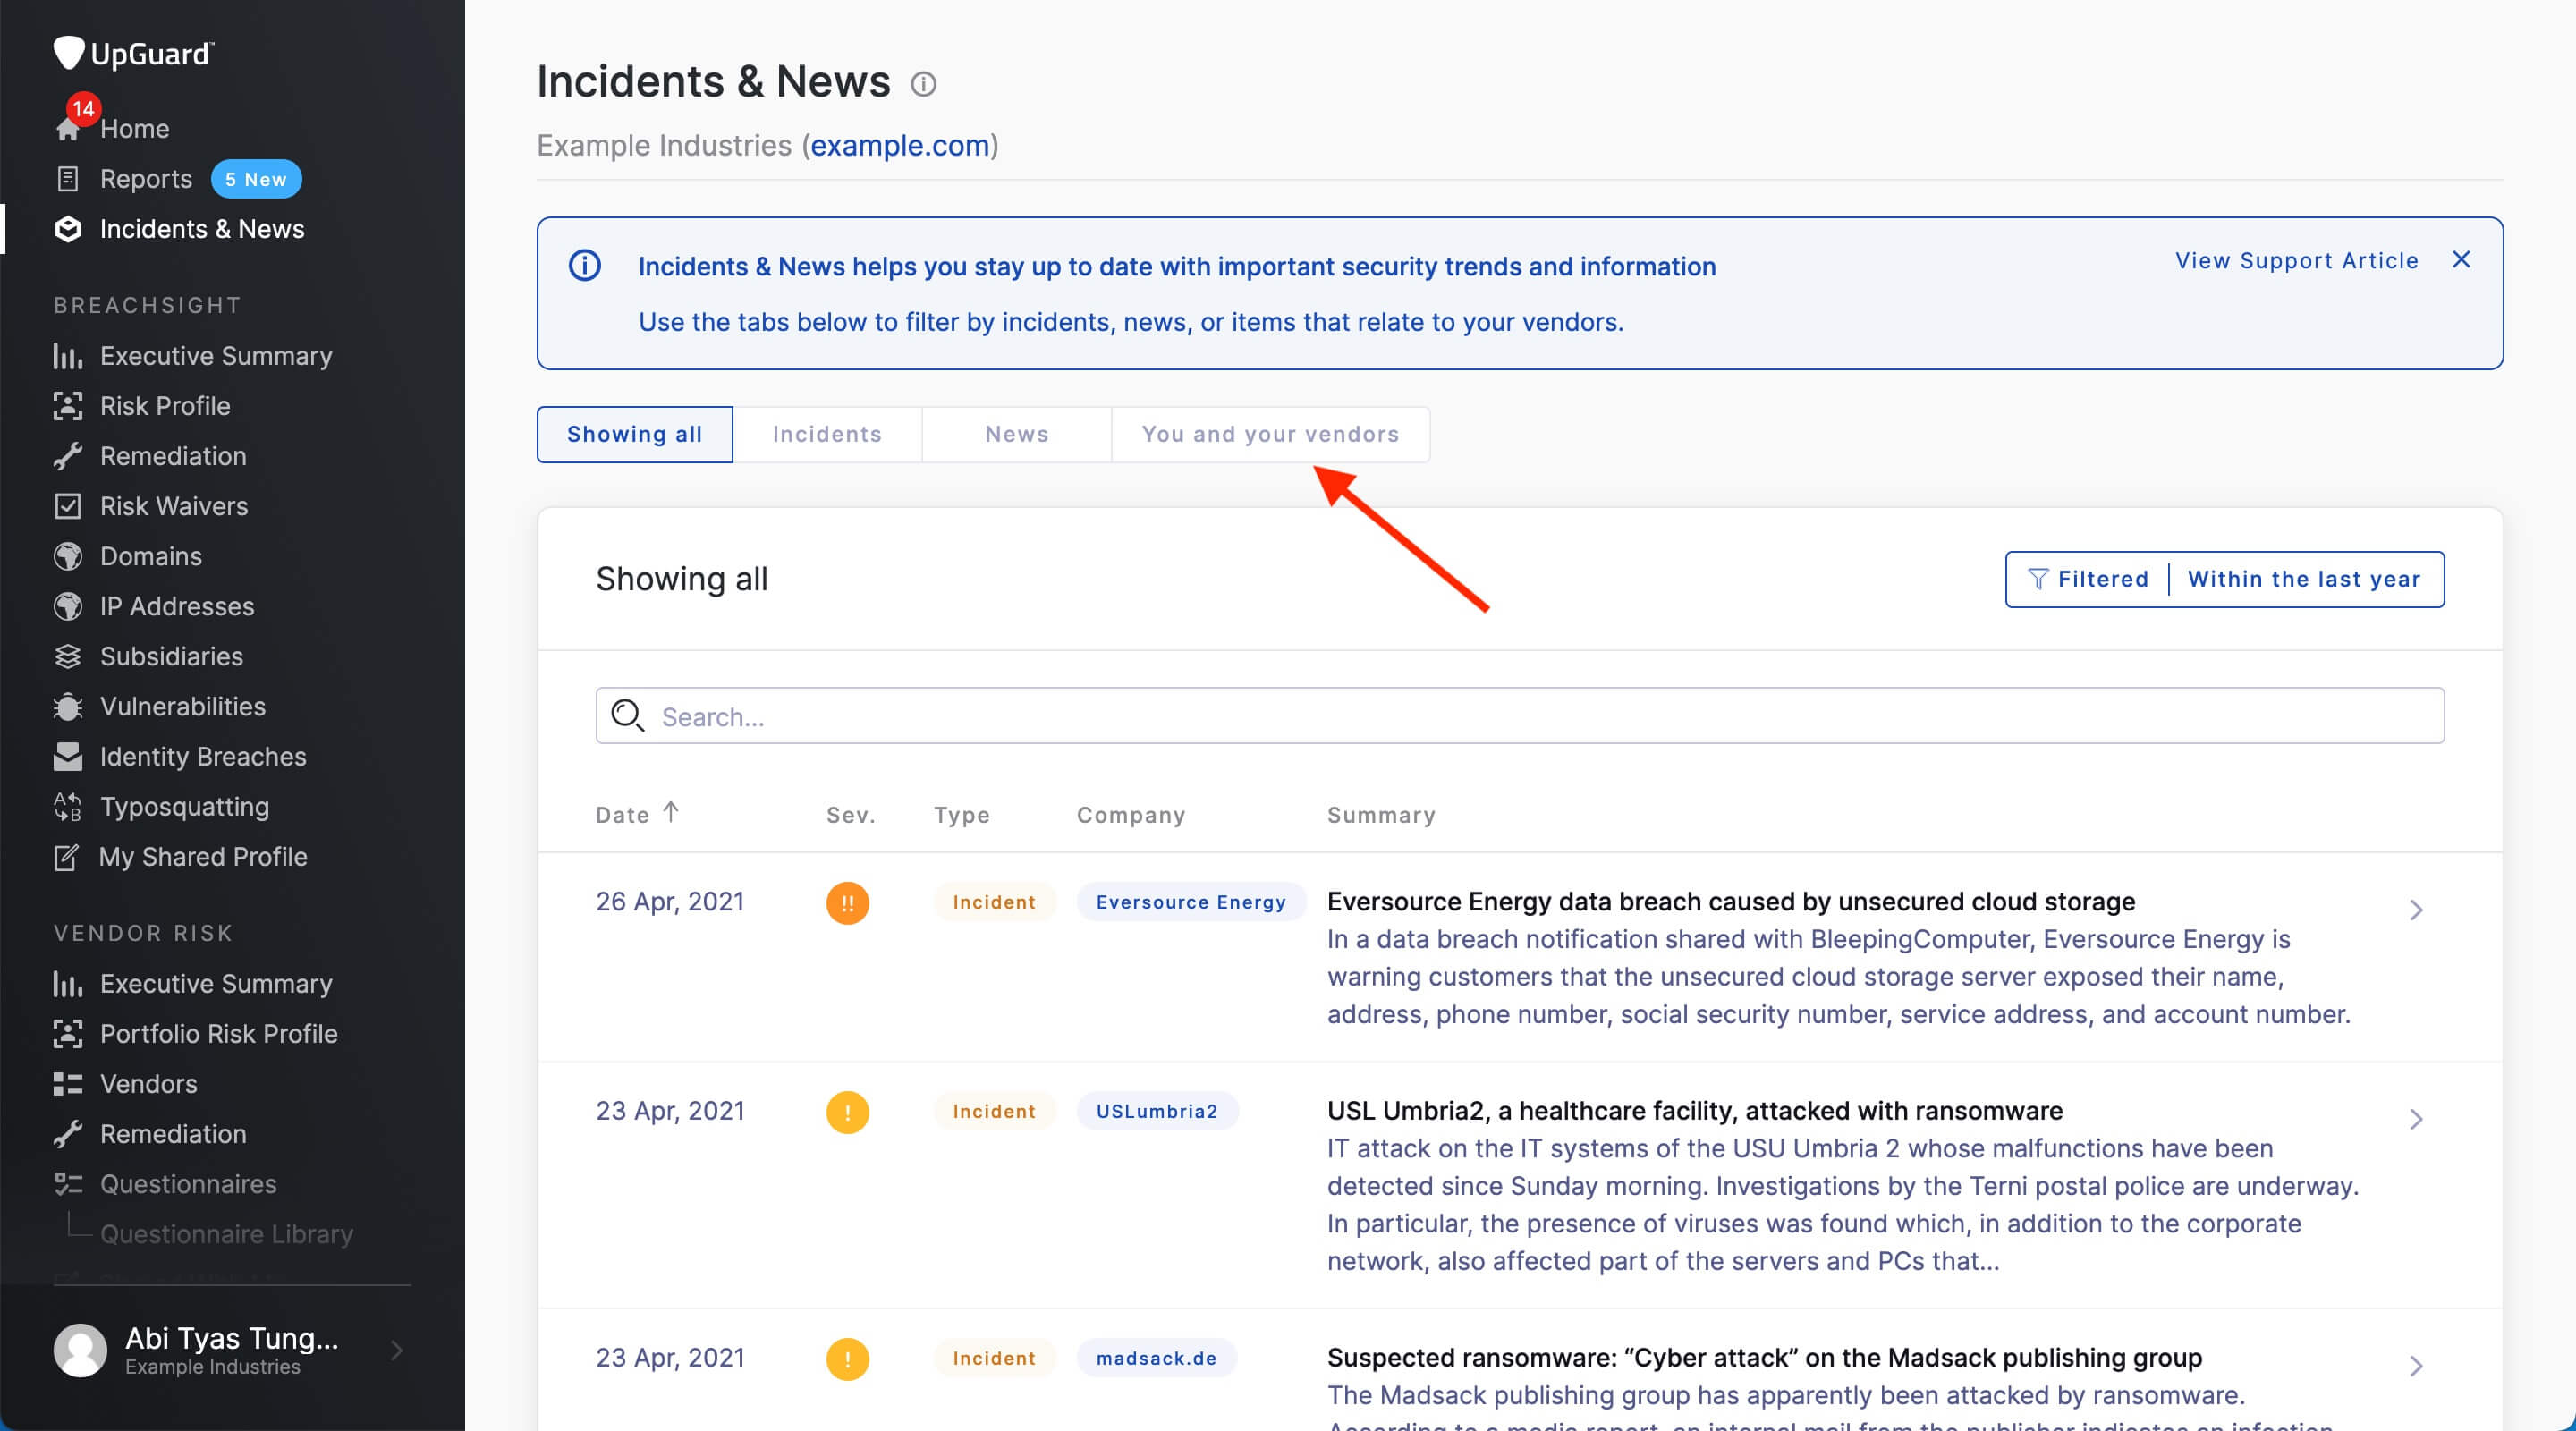 Incidents and news feed by UpGuard